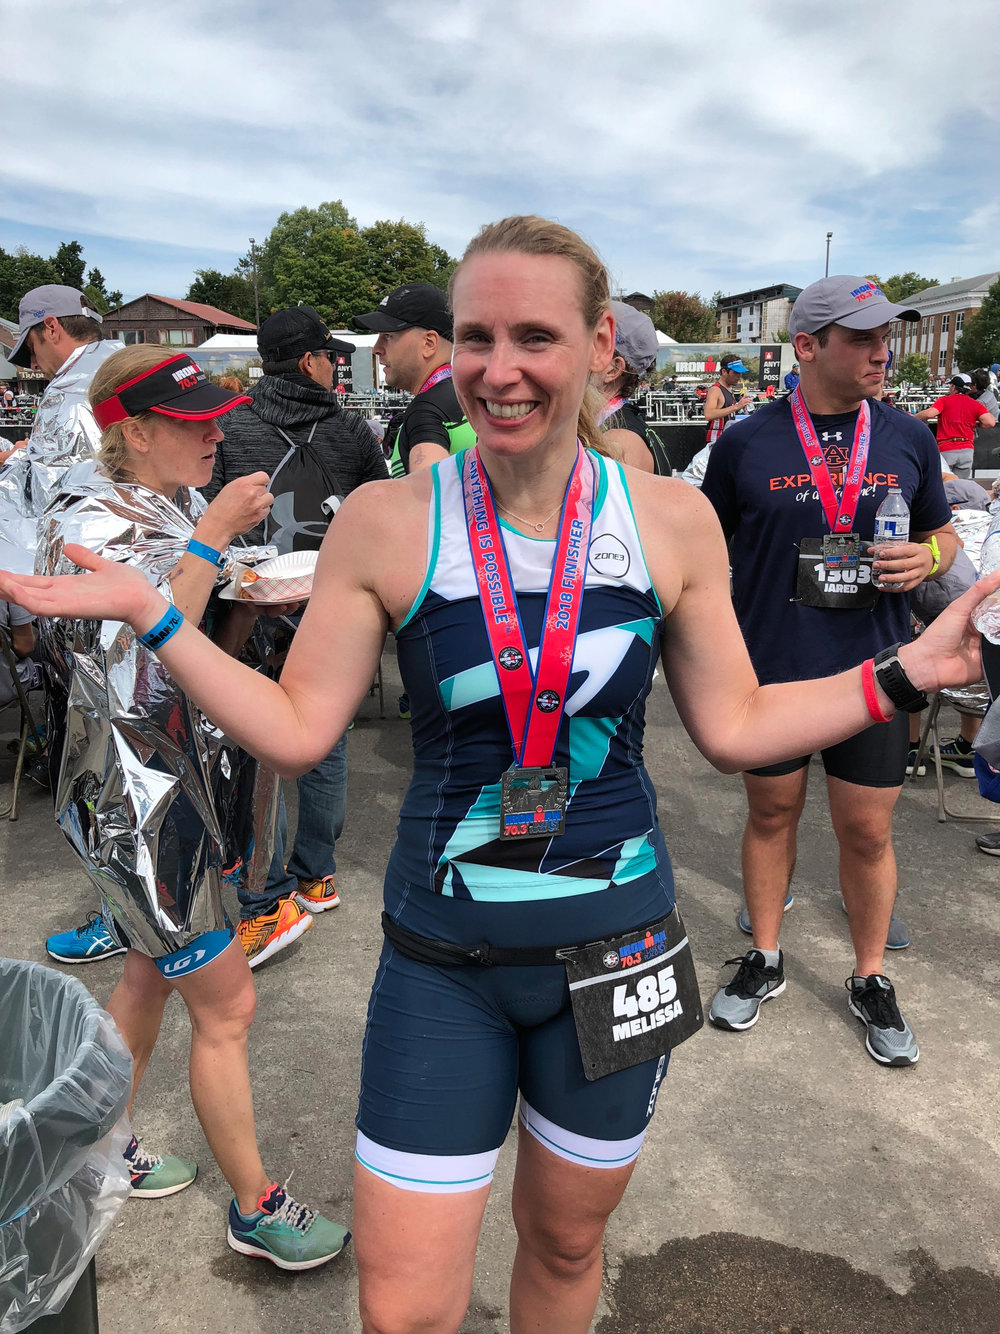 Melissa Gordon - French Creek Sprint Triathlon3rd AG 40-49 (1:48:54)Ironman 70.3 Lake Placid13th Swim AG 40-45 (35:18)49th AG 40-45 (6:57:37)HITS Olympic Distance Hudson Valley, NY 20183rd AG 40-44 (3:10:31)Freihofer's Run For Women 5k(26:48)Mohawk Hudson Half Marathon(2:02:24)Troy Turkey Trot 10k(51:07, 4:00 PR from 2017 time 55:14)Stockadeathon 15k(1:22:44)